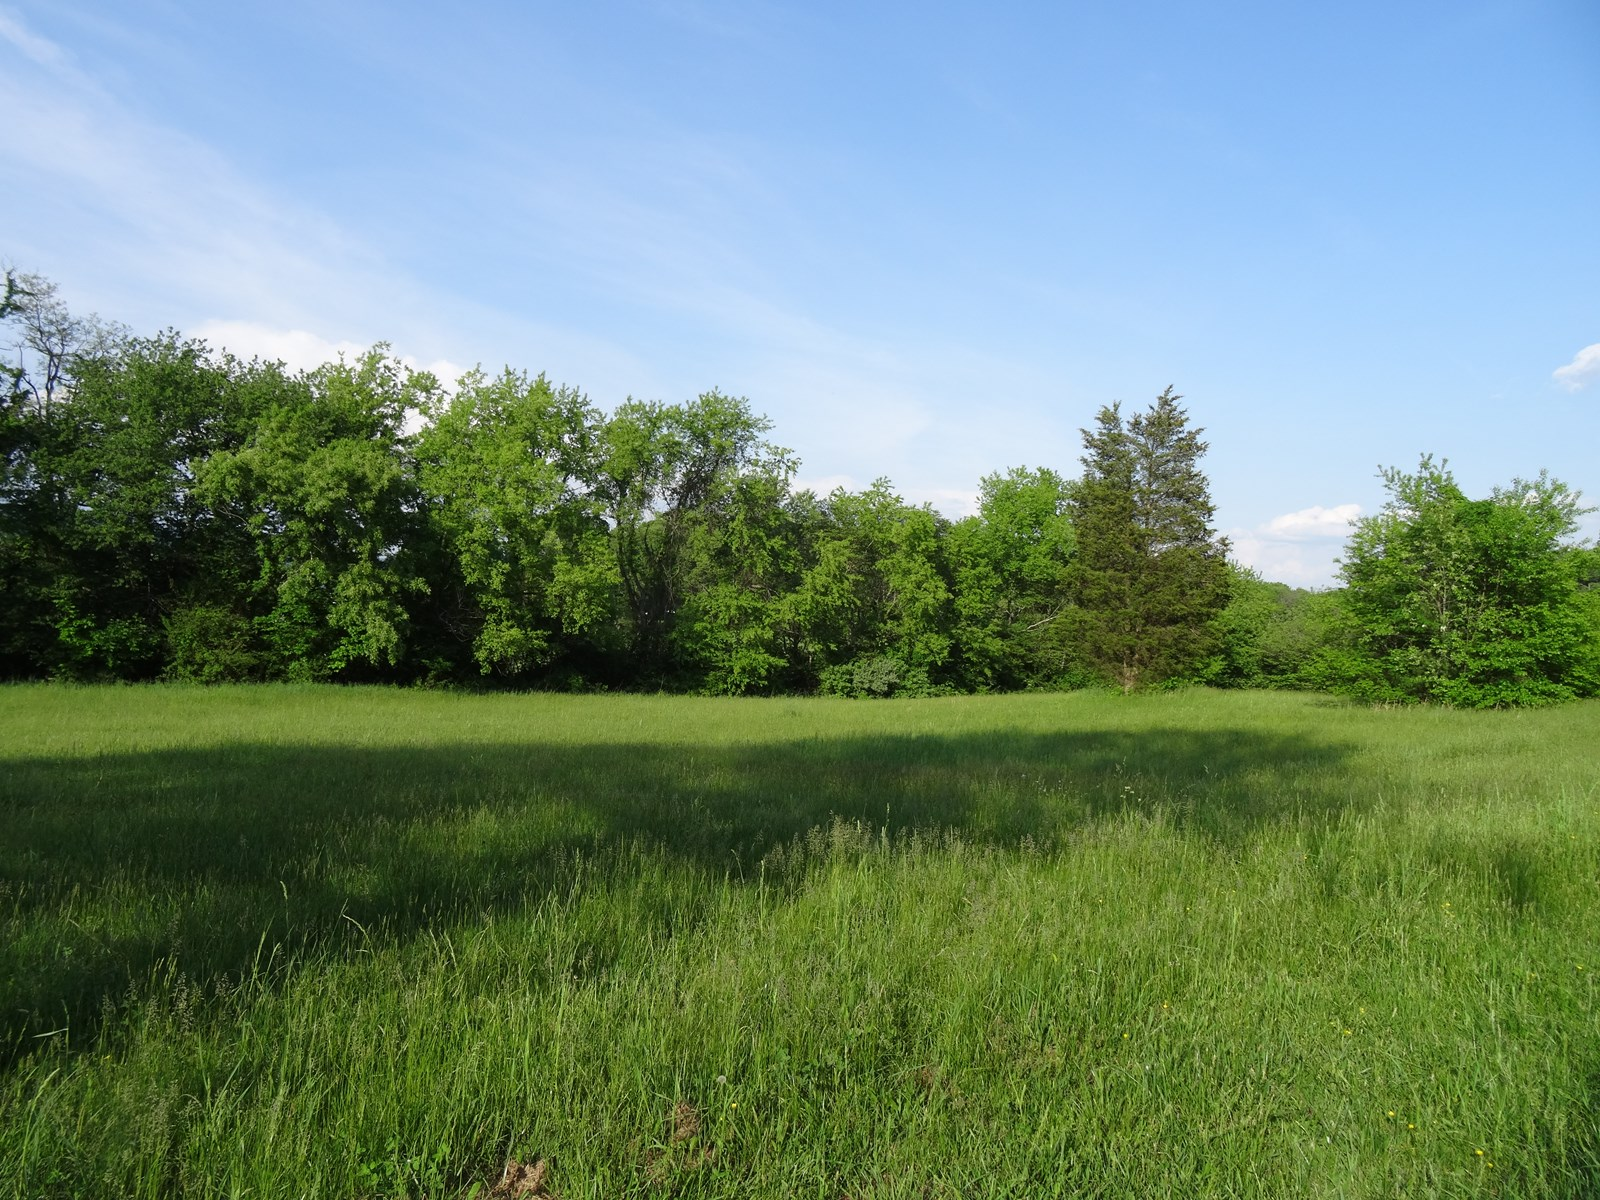 Looking to Build? Nice level lot conveniently located.